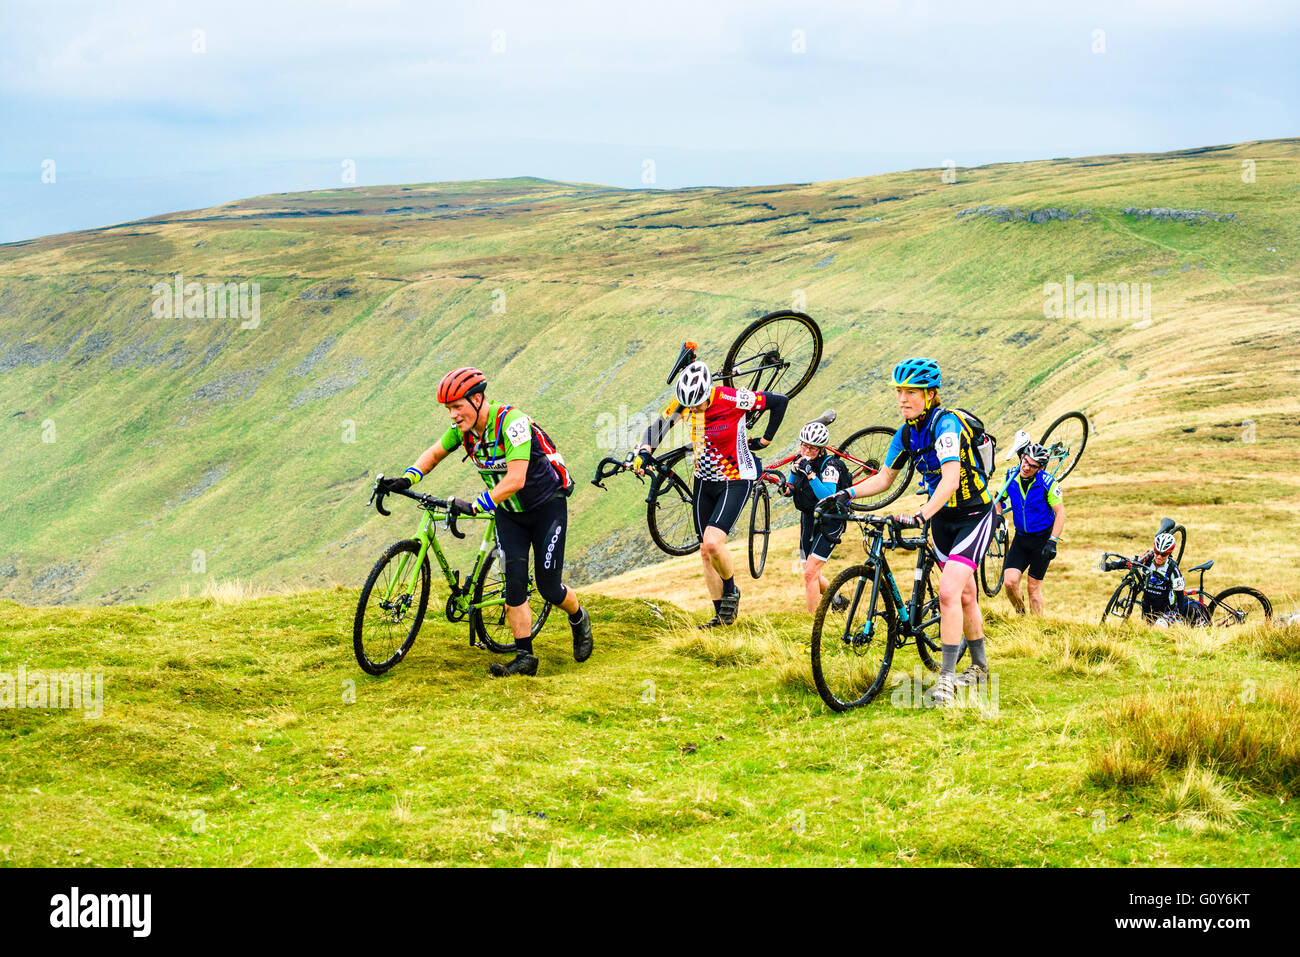 Riders ascending Ingleborough in the 2015 Three Peaks cyclocross race, an annual event over three Yorkshire mountains - Stock Image